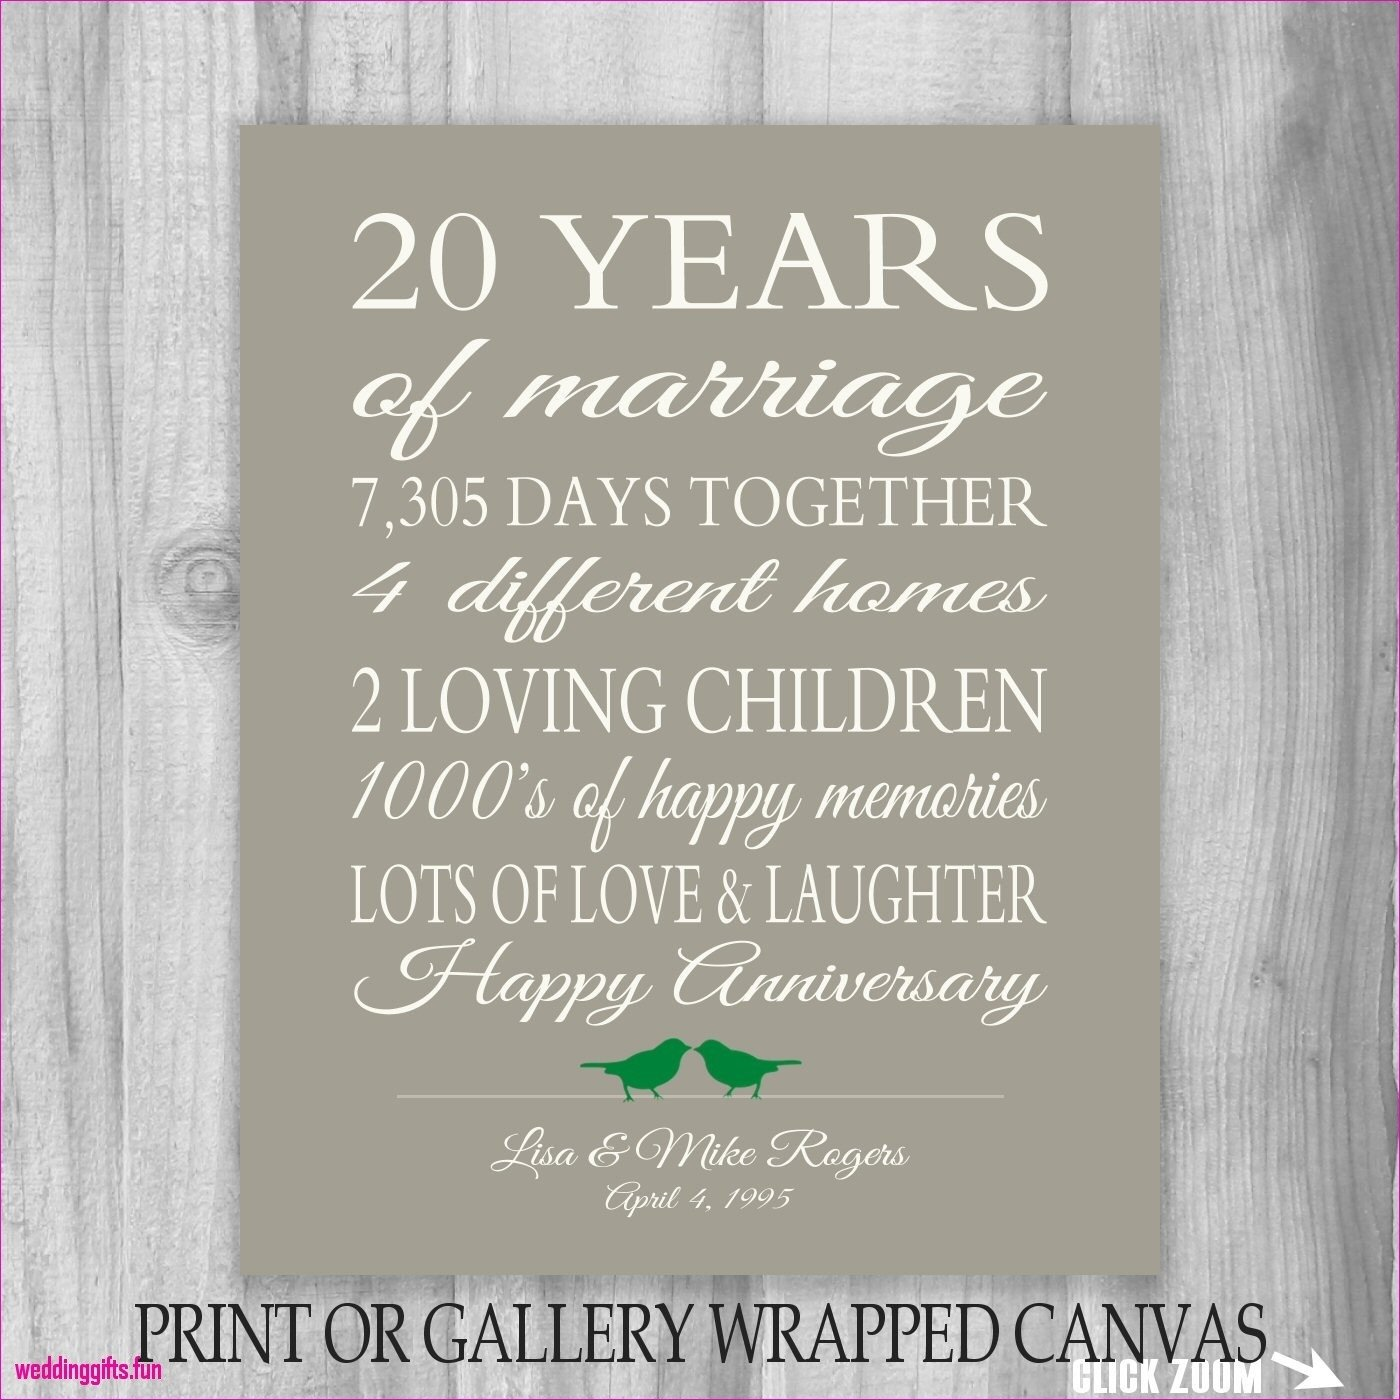 10 Lovable Ideas For 20Th Wedding Anniversary fresh 20th wedding anniversary gifts for her foxy wedding gifts 2020